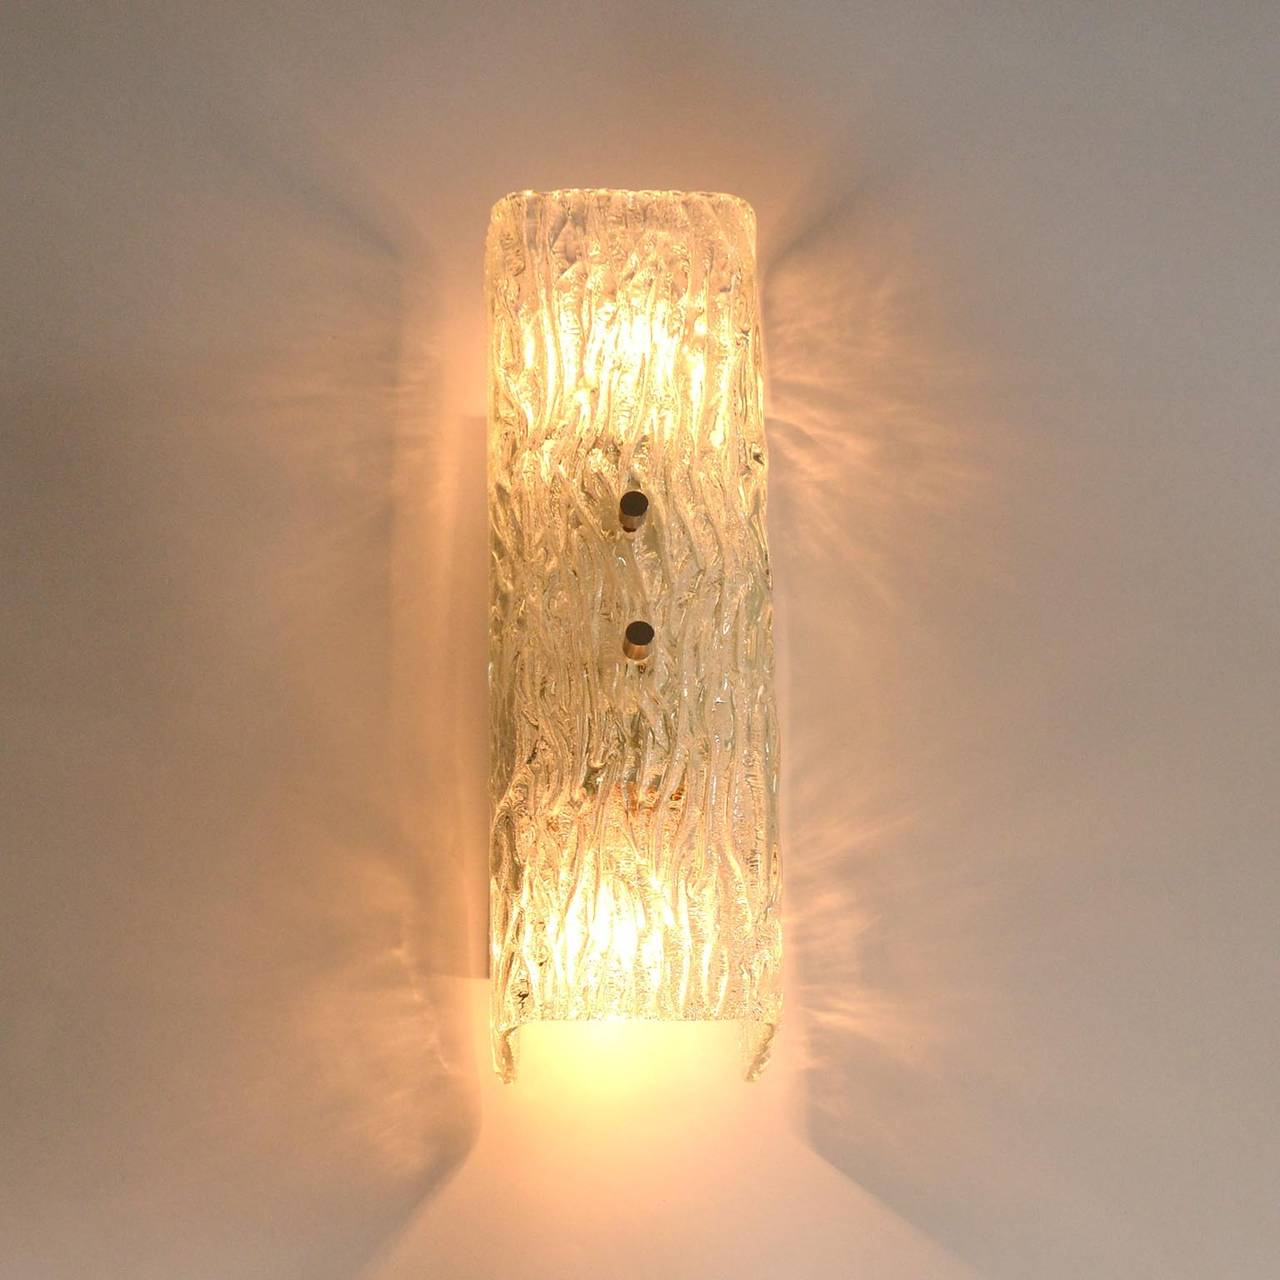 Mid-20th Century Pair of Kalmar Glass Sconces or Wall Lights, 1950s For Sale